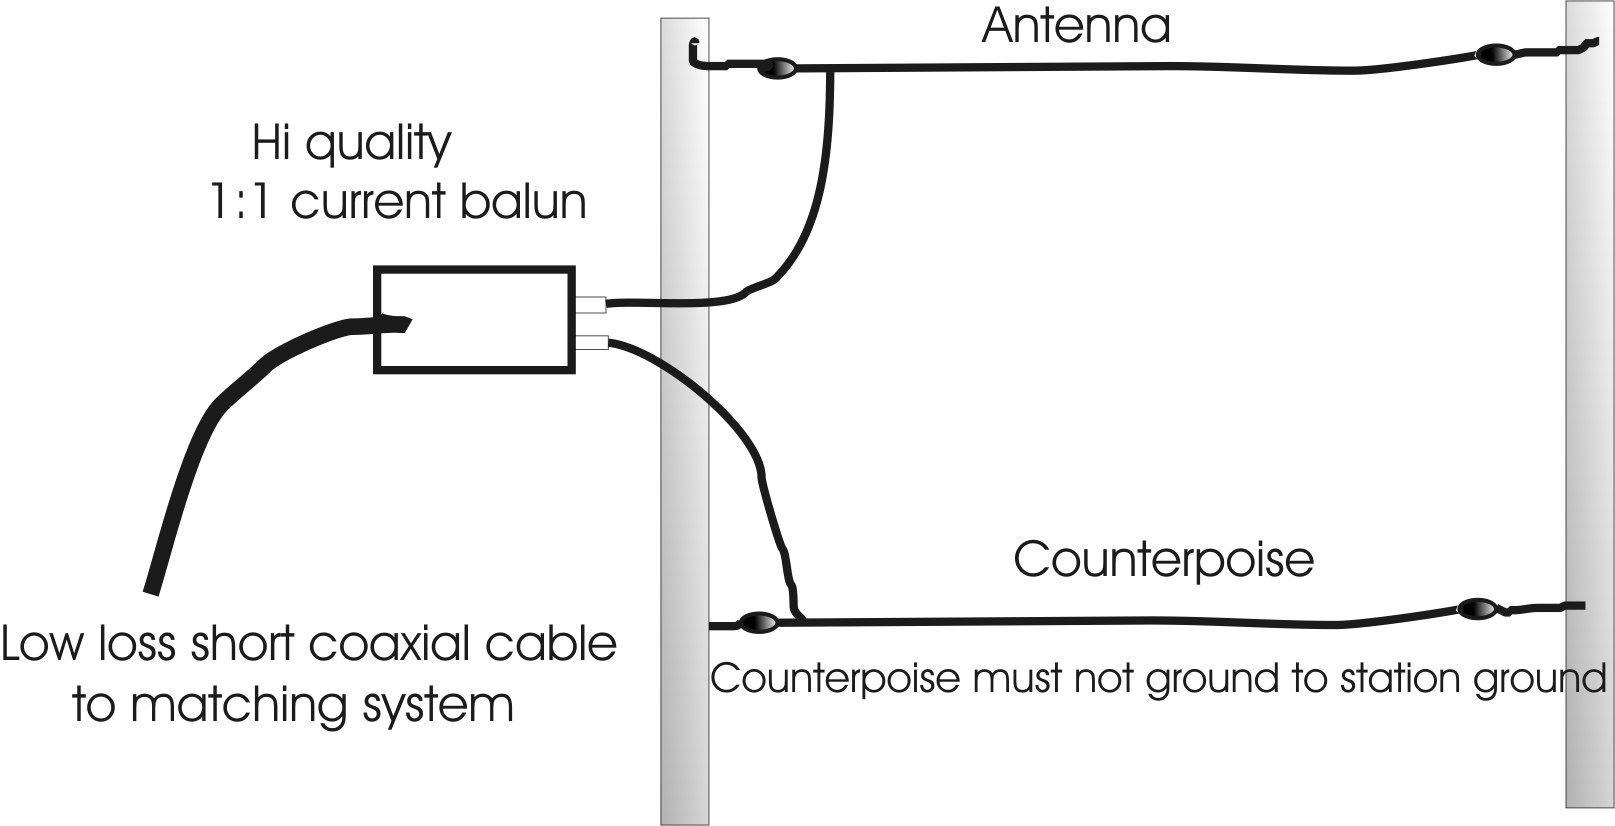 Long wire antenna random wire Ham Radio Wiring Diagram on ham radio radio, ham radio speakers, ham radio antenna, ham radio system, ham radio switch, ham radio plug, ham radio lights, ham radio relay, ham radio brochure, ham radio cable, ham radio parts diagram, ham radio equipment diagram, ham radio timer, ham radio guide, ham radio help, ham radio cover, ham radio circuit diagram, ham radio manual, ham radio parts catalog, ham radio block diagram,